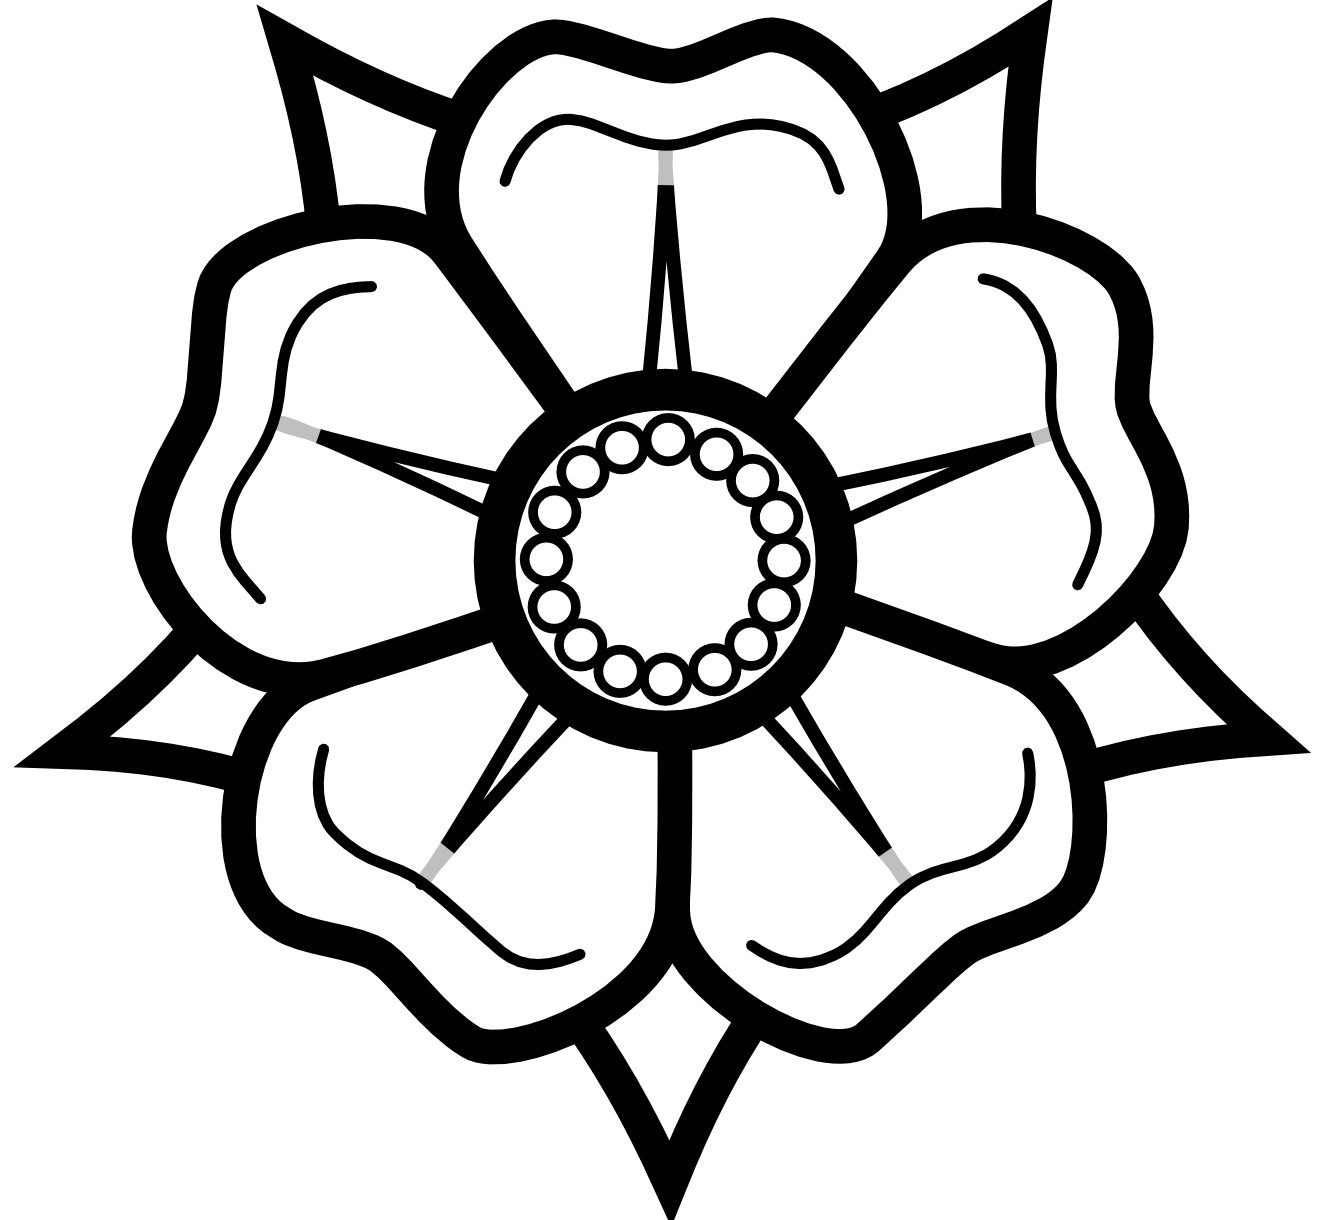 16 Black And White Flower Graphics Images